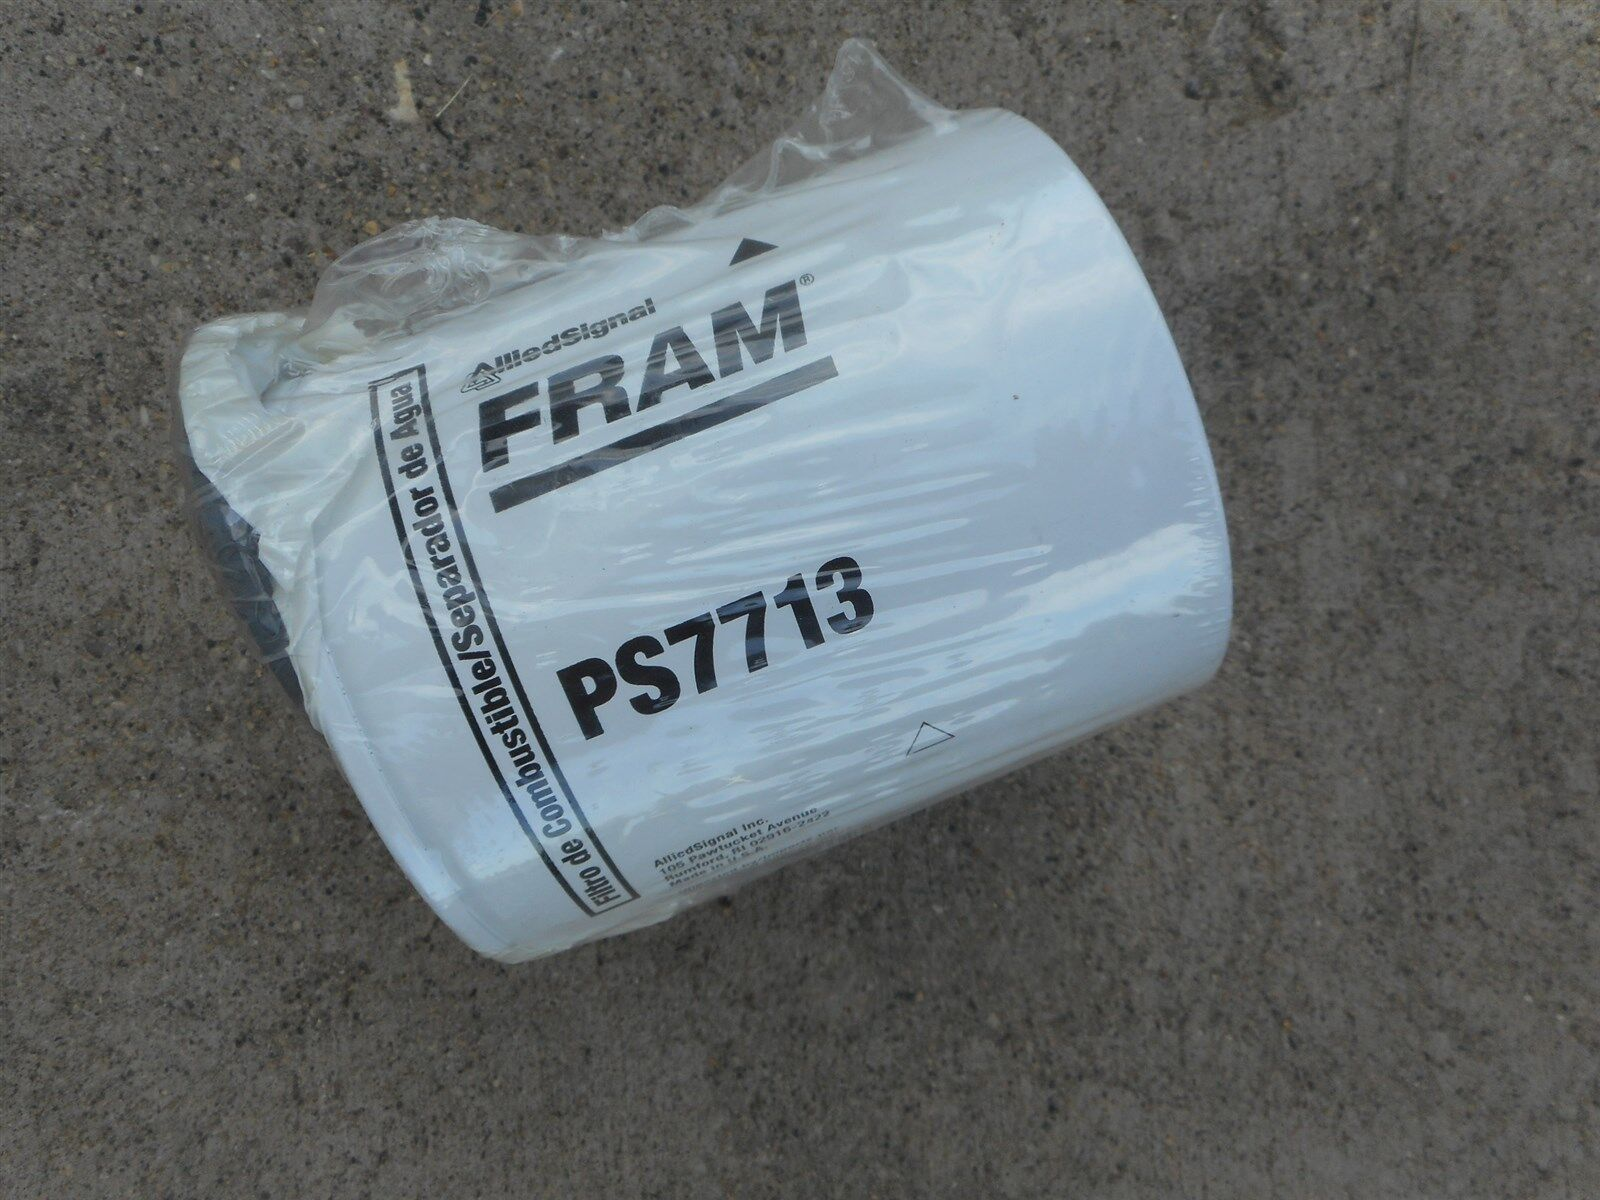 33630 F66025 3630 LFF5849 Fram PS7713 Fuel Water Separator Filter Replaces